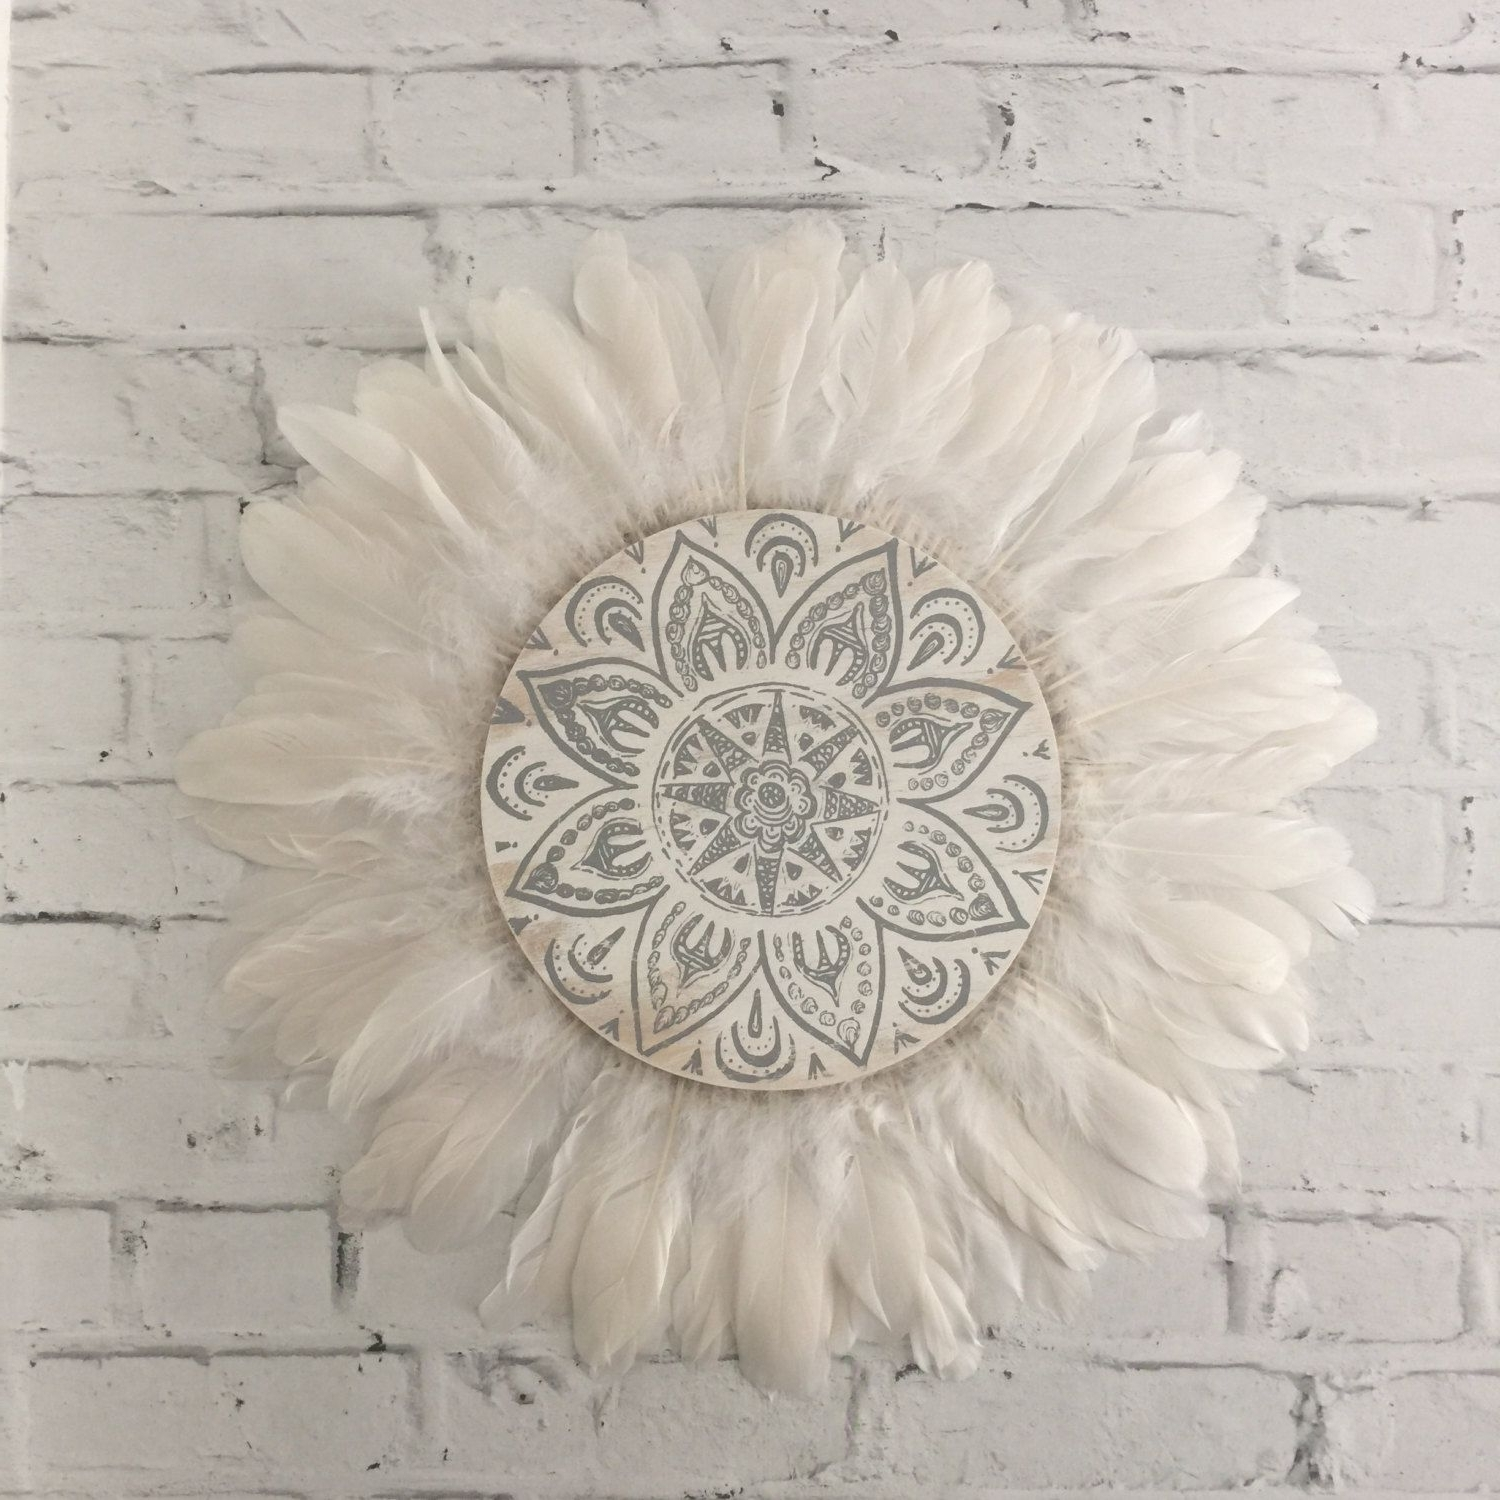 Tribal Mandala White And Grey Feathers Round Wall Art, Boho Design In Fashionable Round Wall Art (View 14 of 15)